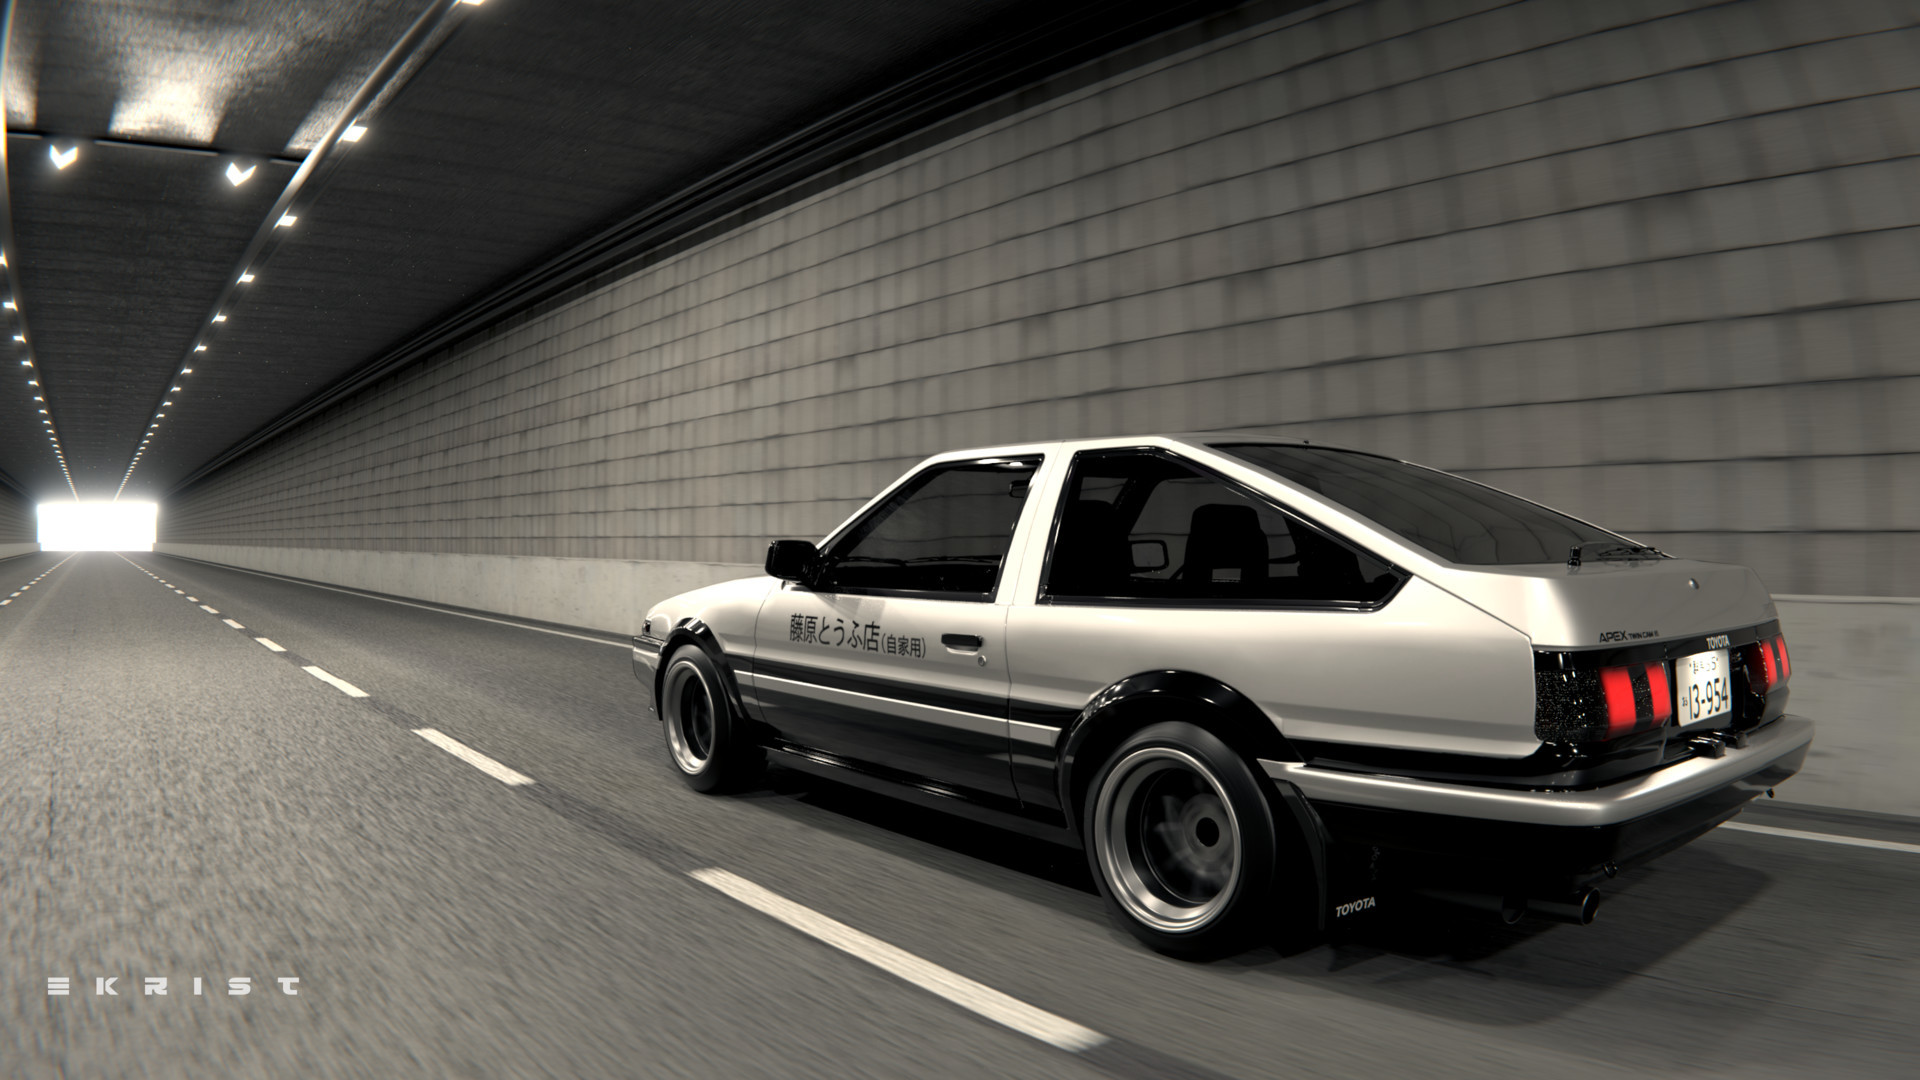 Initial d wallpaper 64 images - Ae86 initial d wallpaper ...